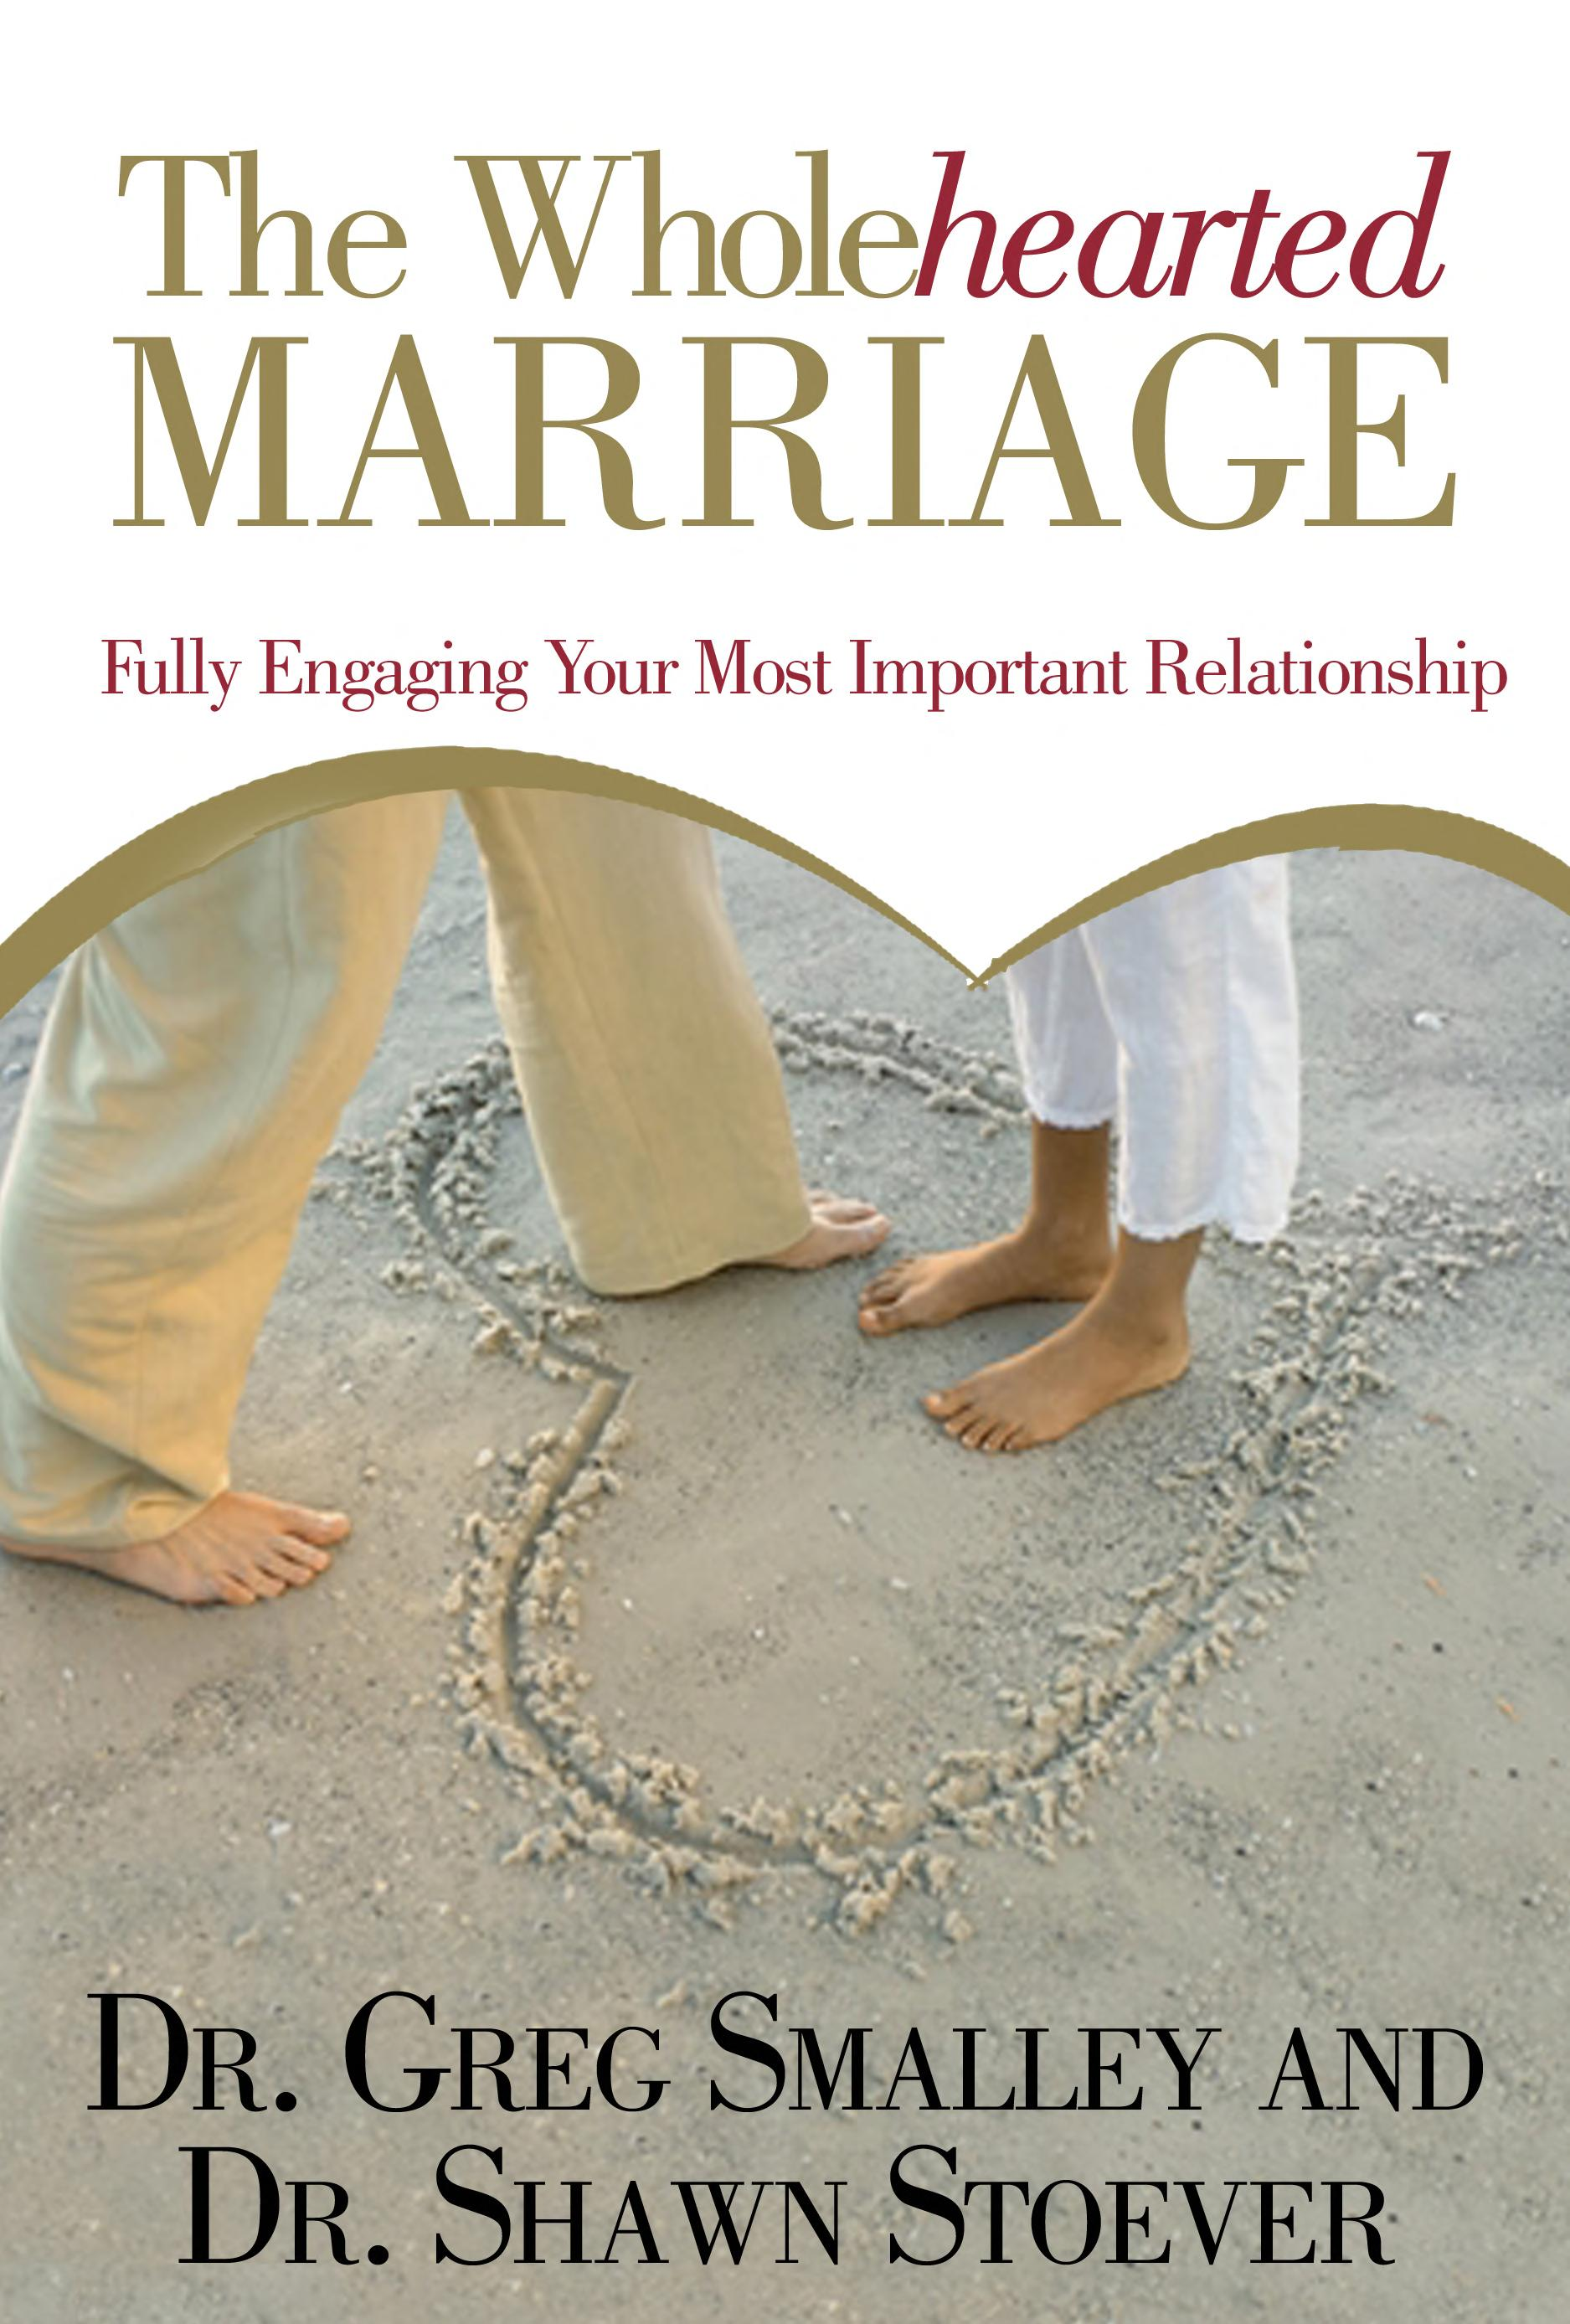 The Wholehearted Marriage tools for helping couples keep a passionate connection with